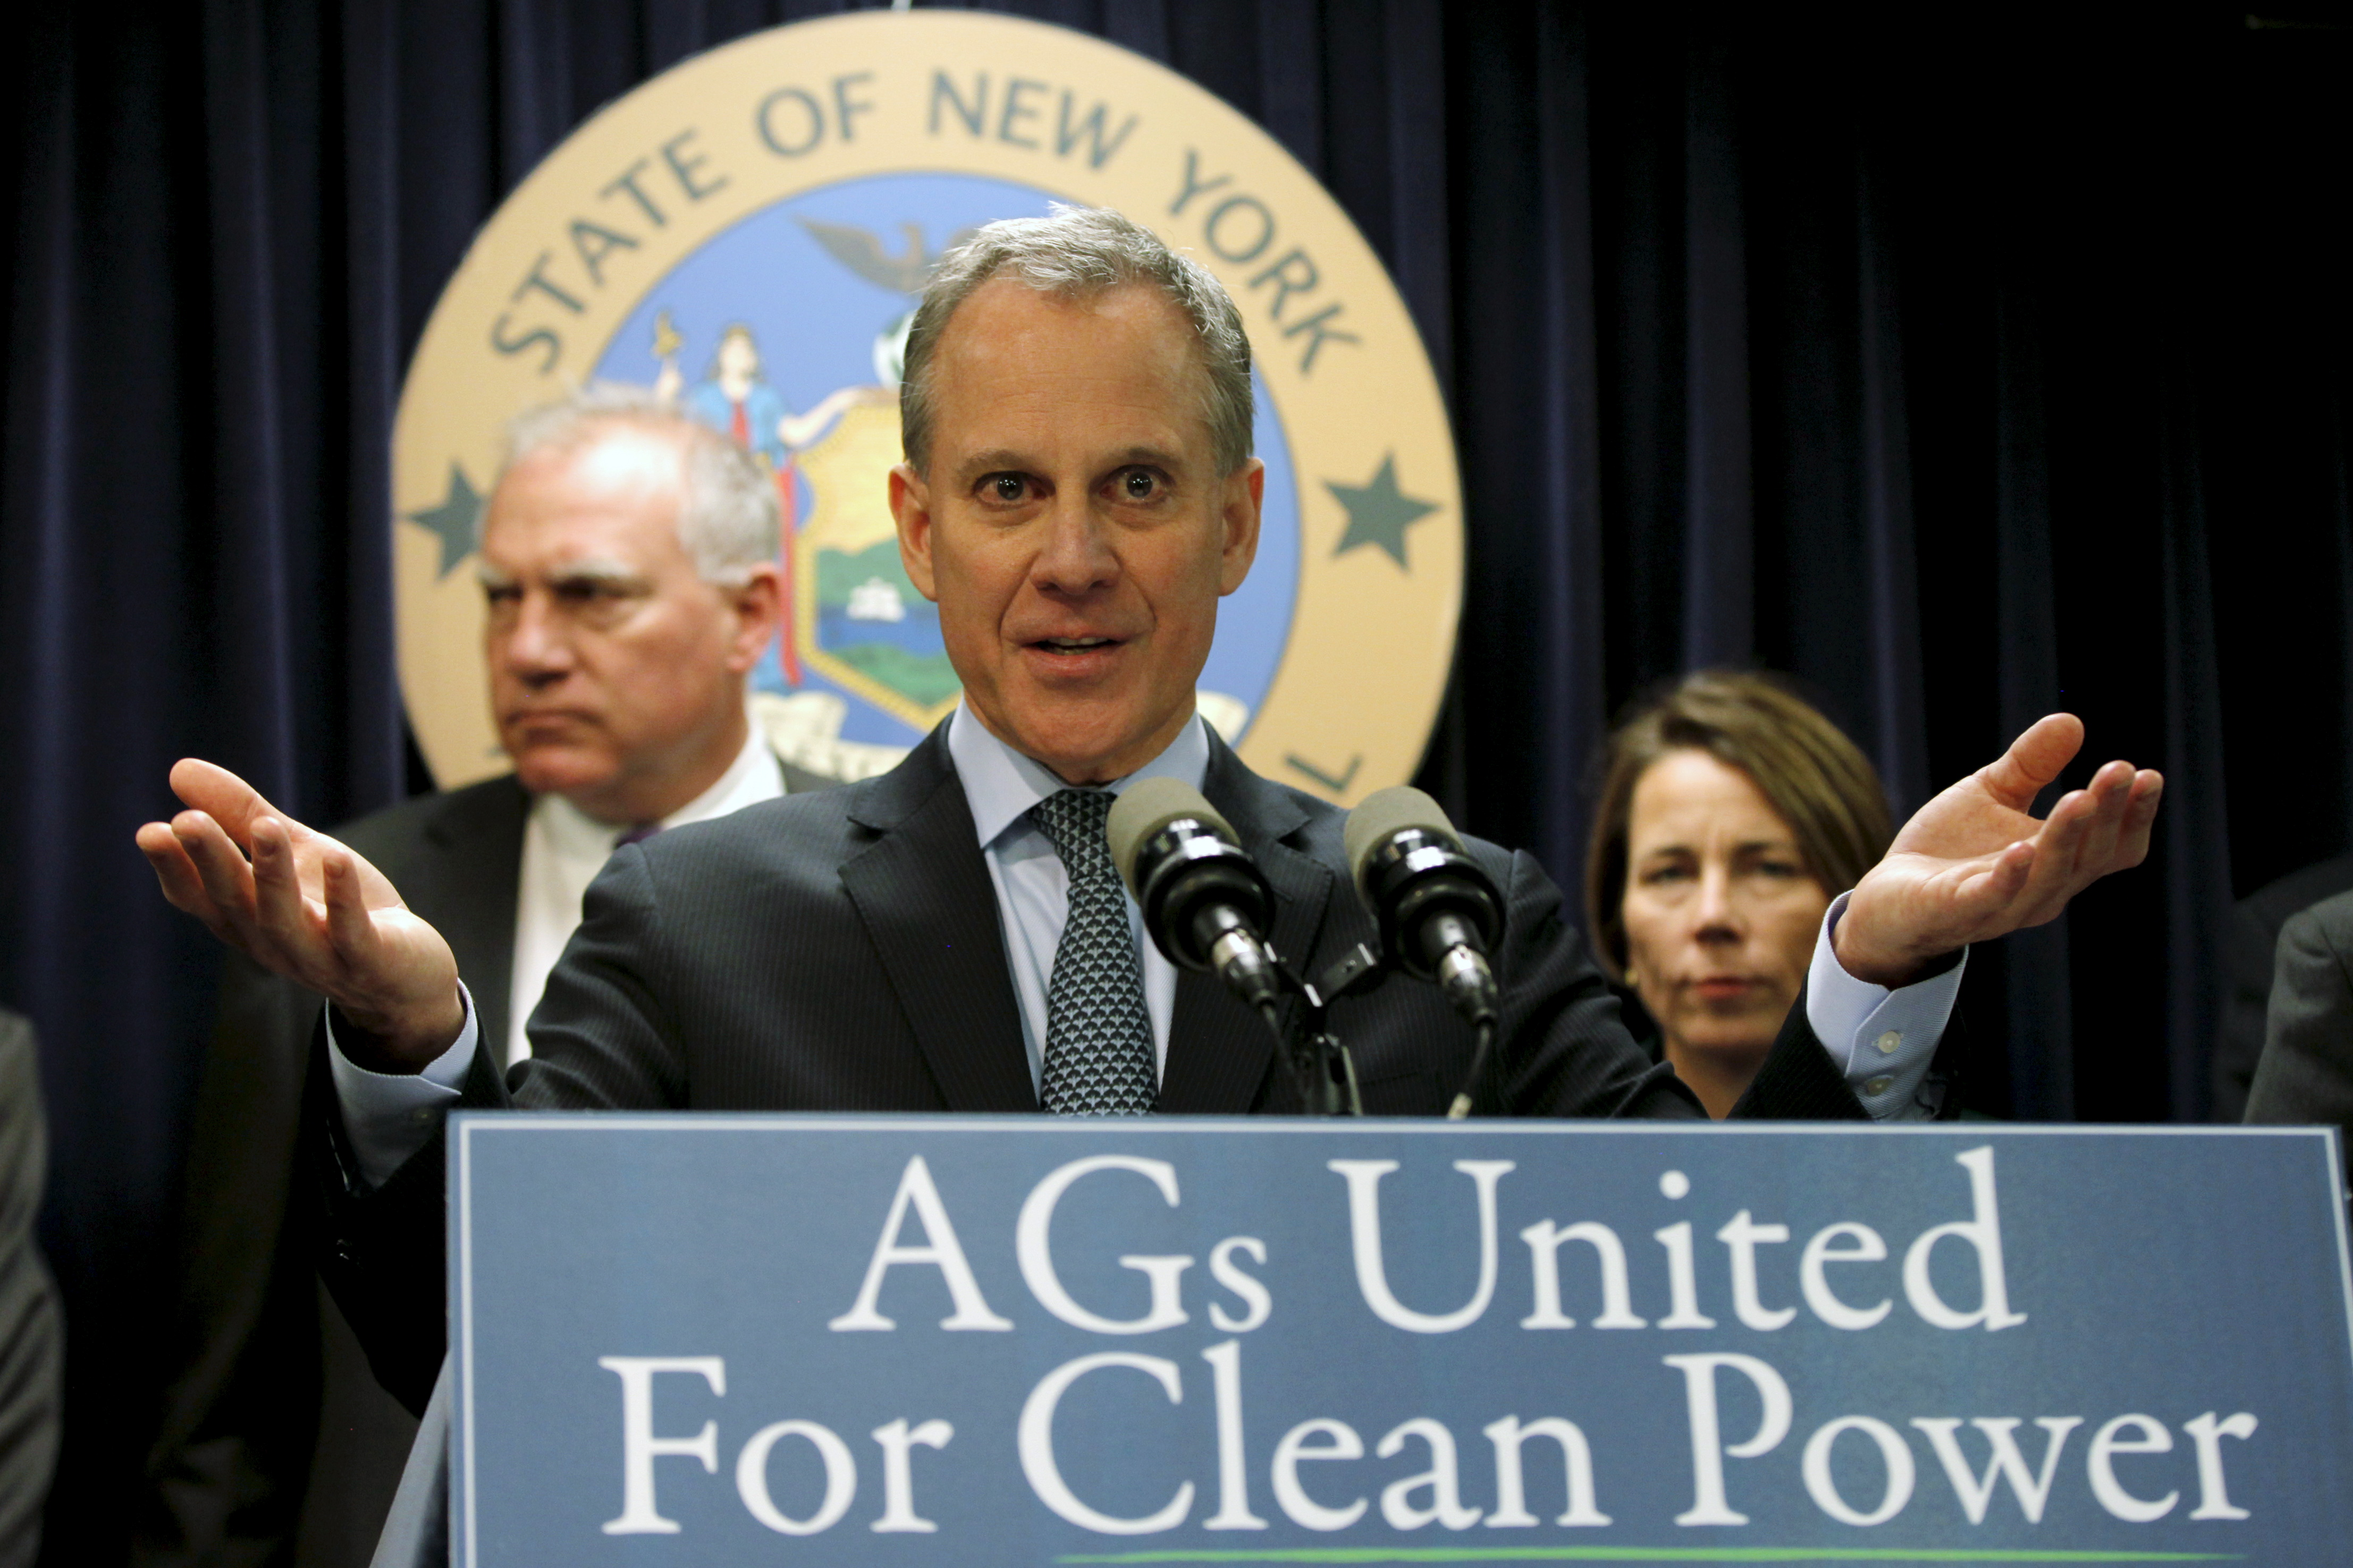 New York Attorney General Eric Schneiderman speaks at a news conference with other U.S. State Attorney's General to announce a state-based effort to combat climate change in the Manhattan borough of New York